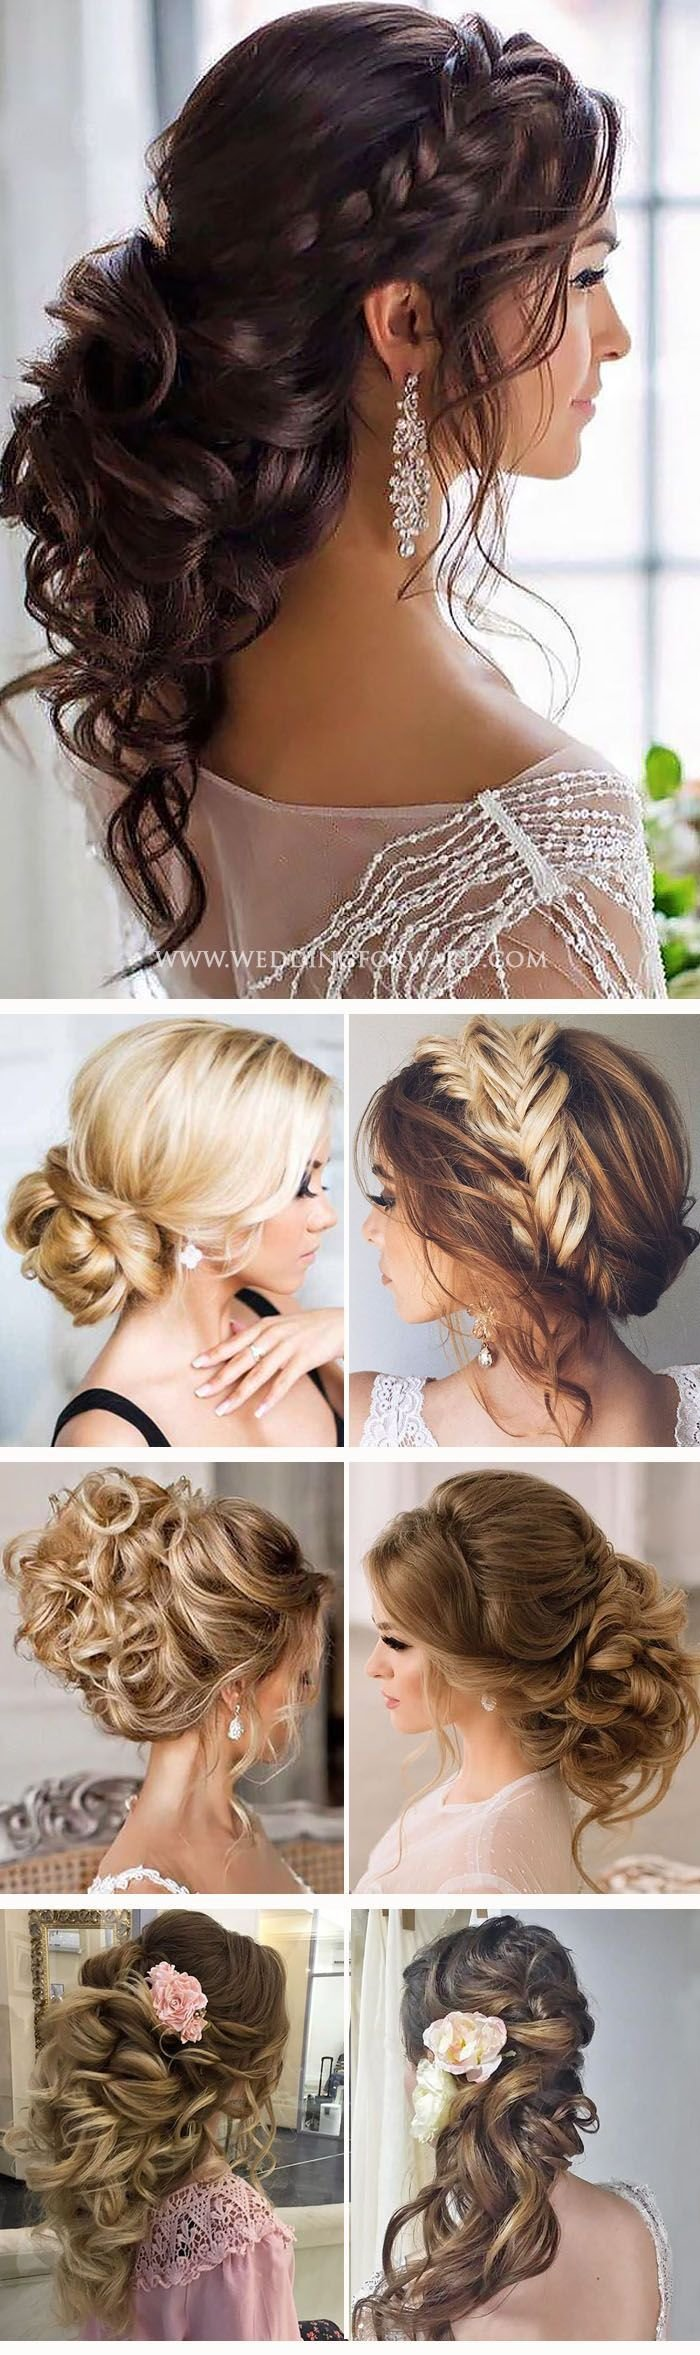 New 36 Trendy Swept Back Wedding Hairstyles Peinados Prom Hair Hair Styles Y Wedding Hair Ideas With Pictures